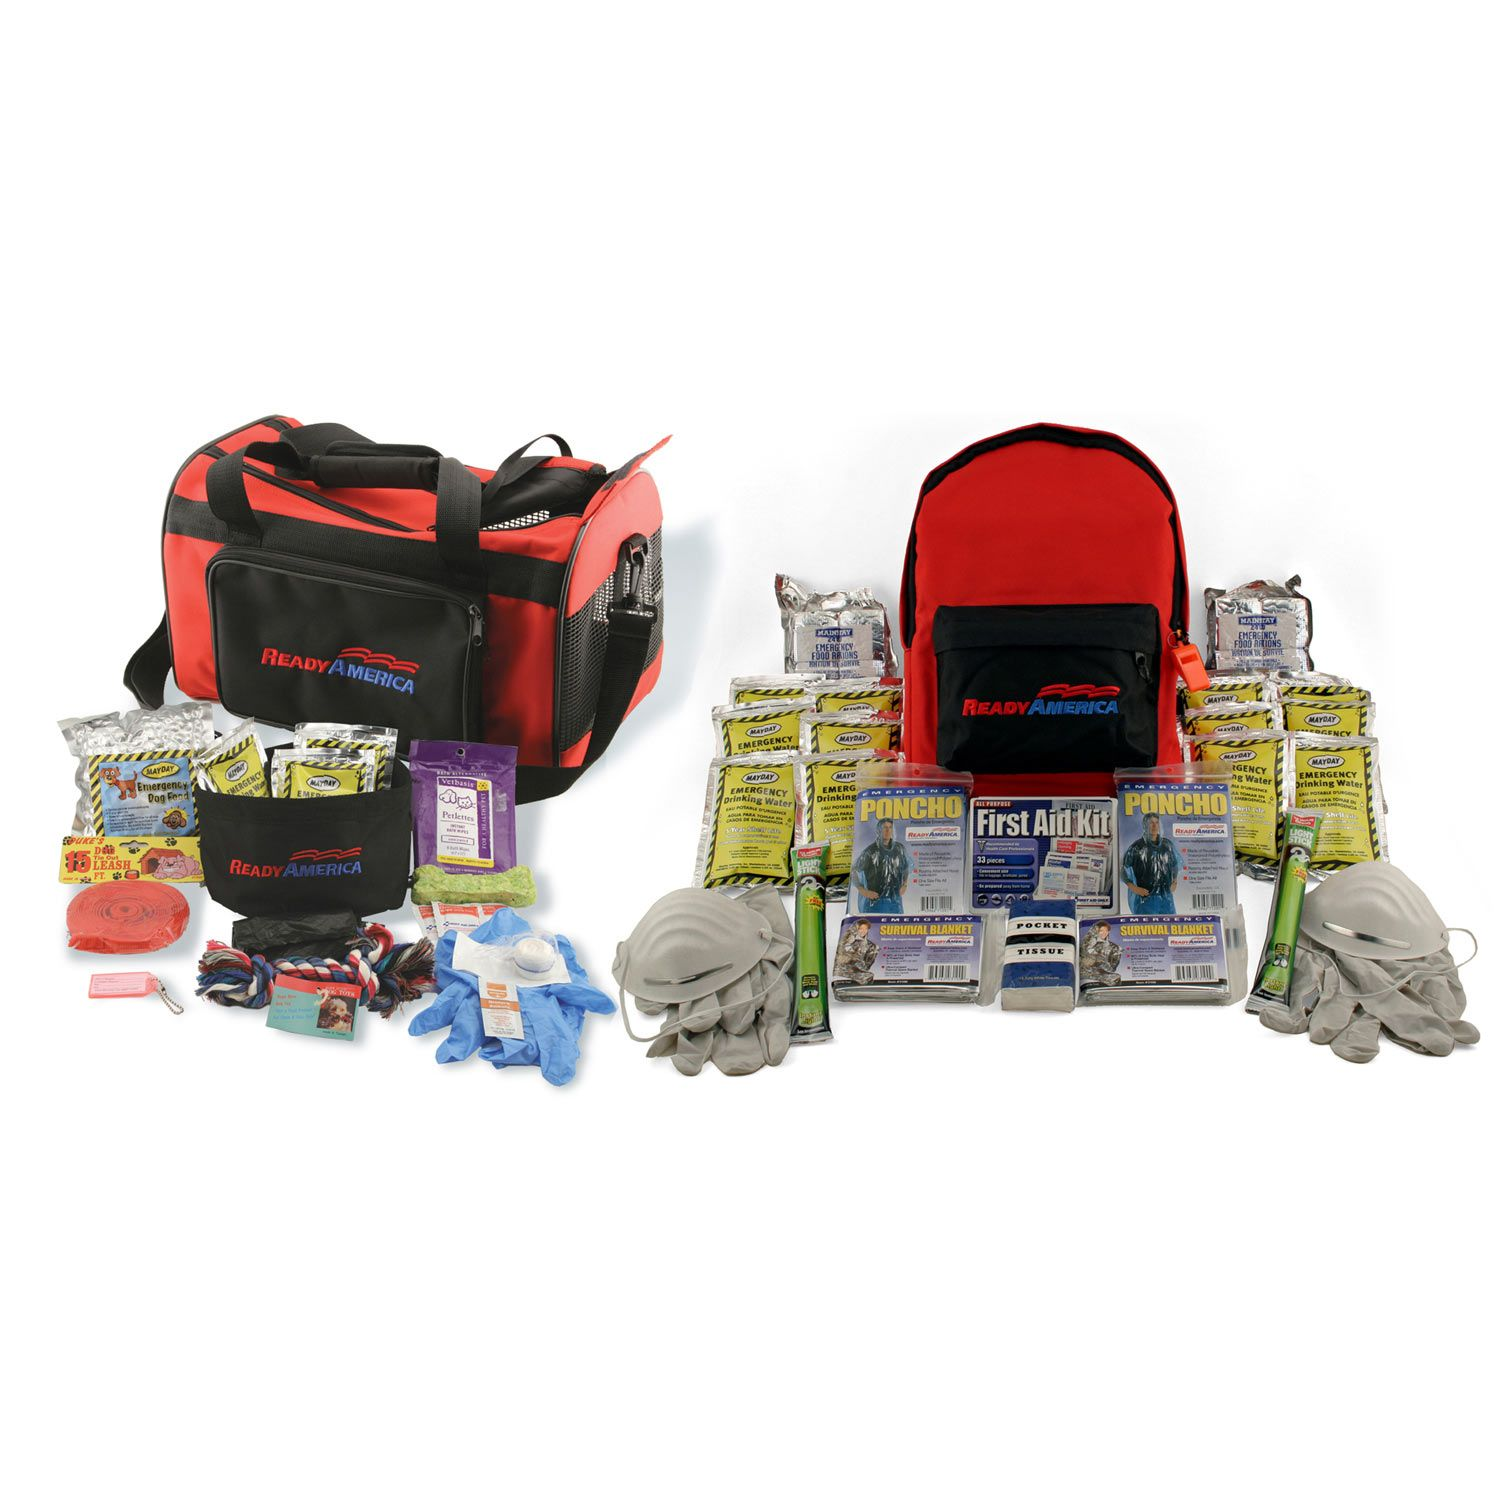 Ready America Grab 'n Go Small Dog and Two Person 3 Day